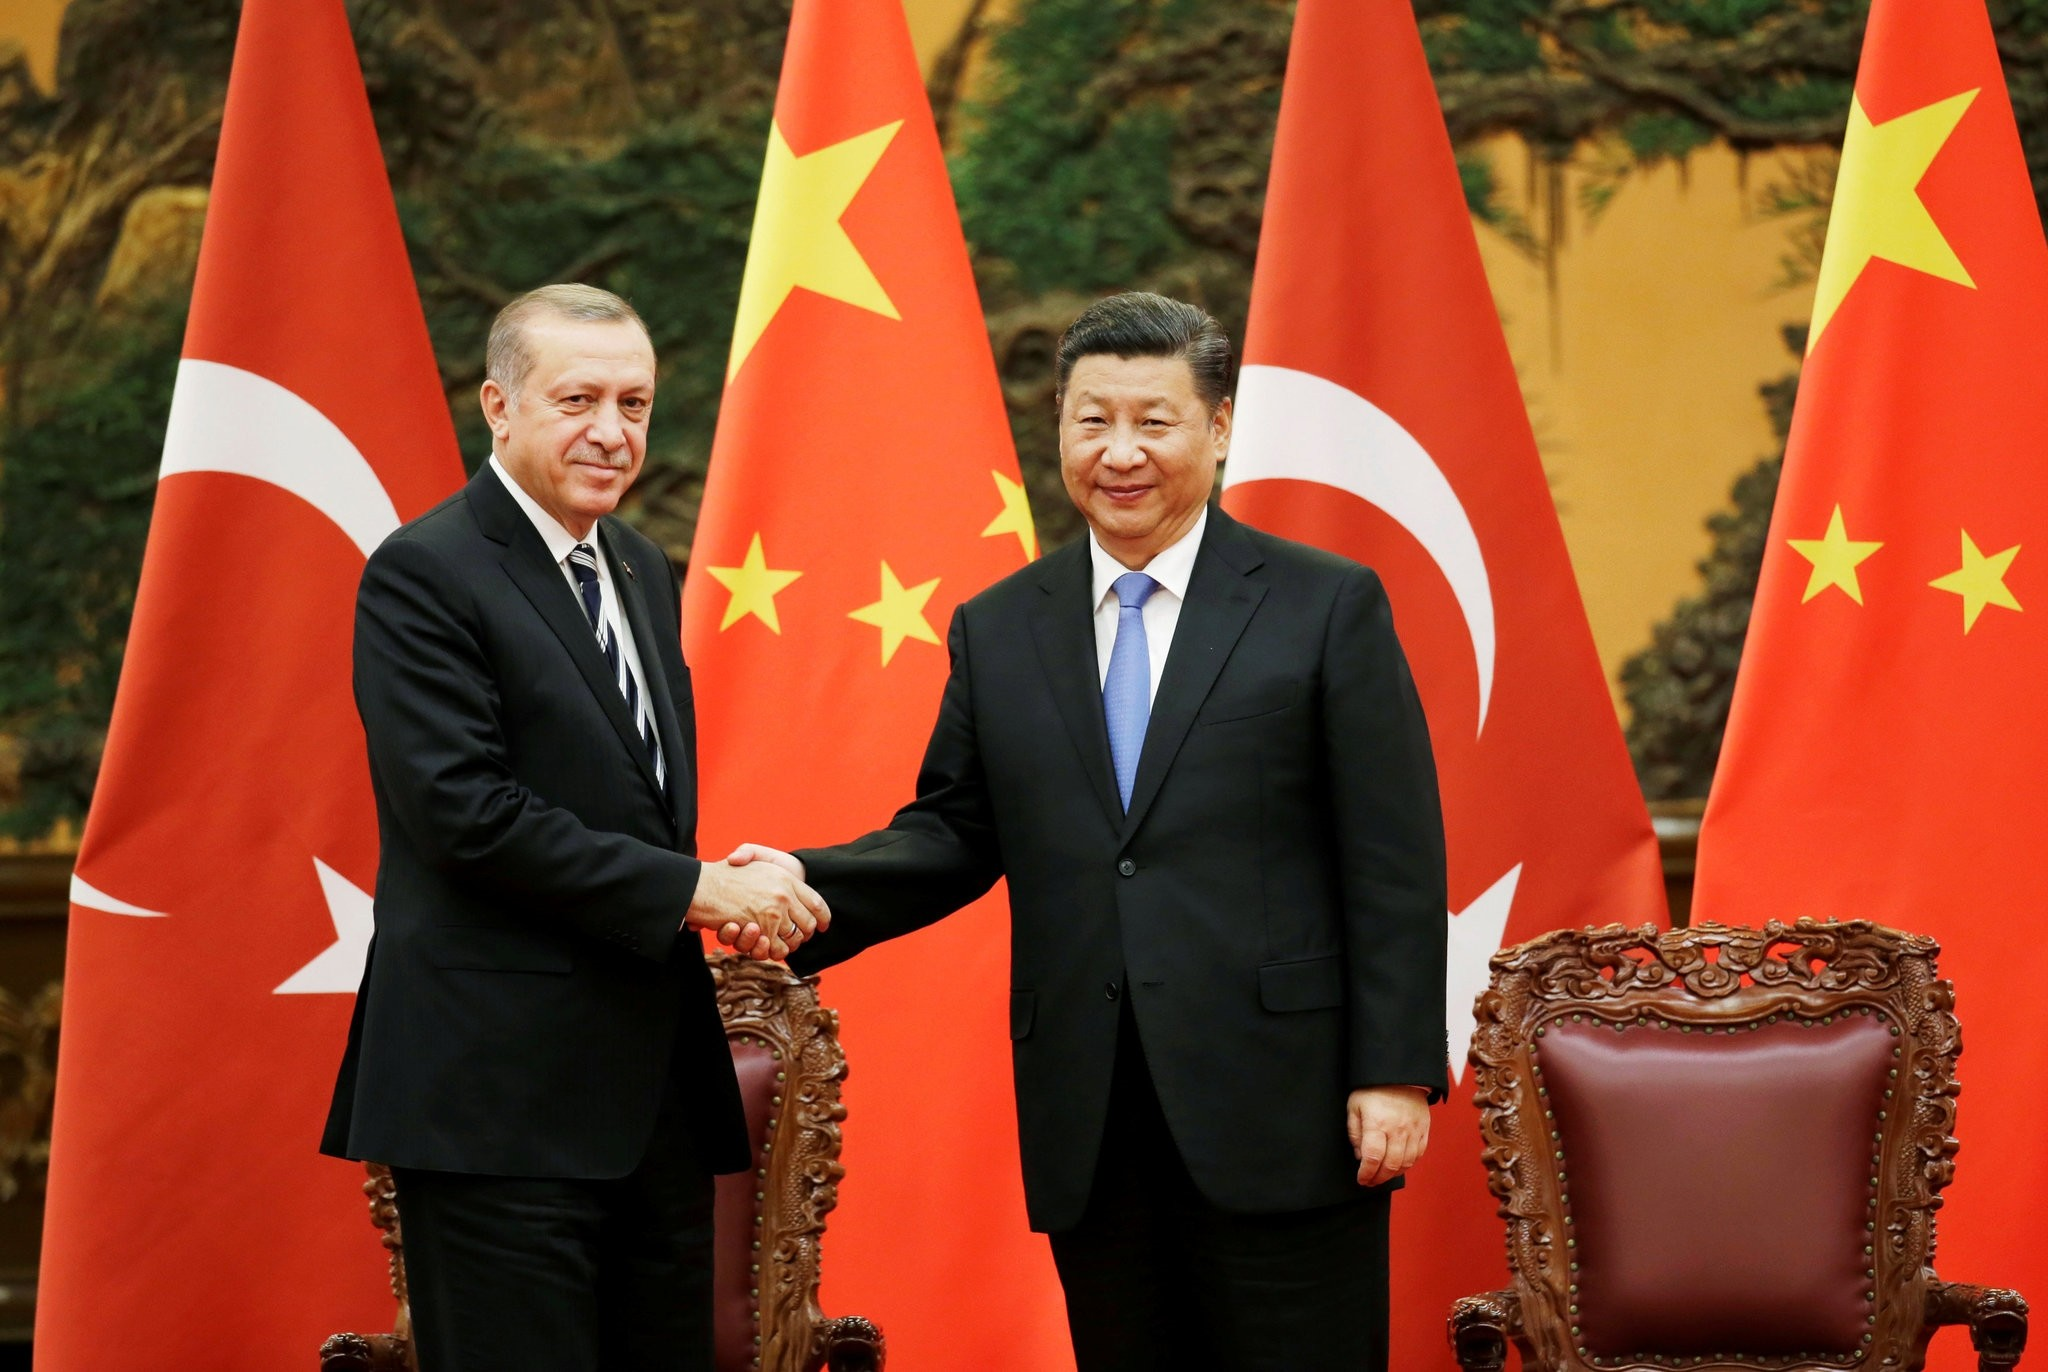 President Erdou011fan and Chinese President Jinping attend a signing ceremony ahead of the Belt and Road Forum in Beijing on Saturday.